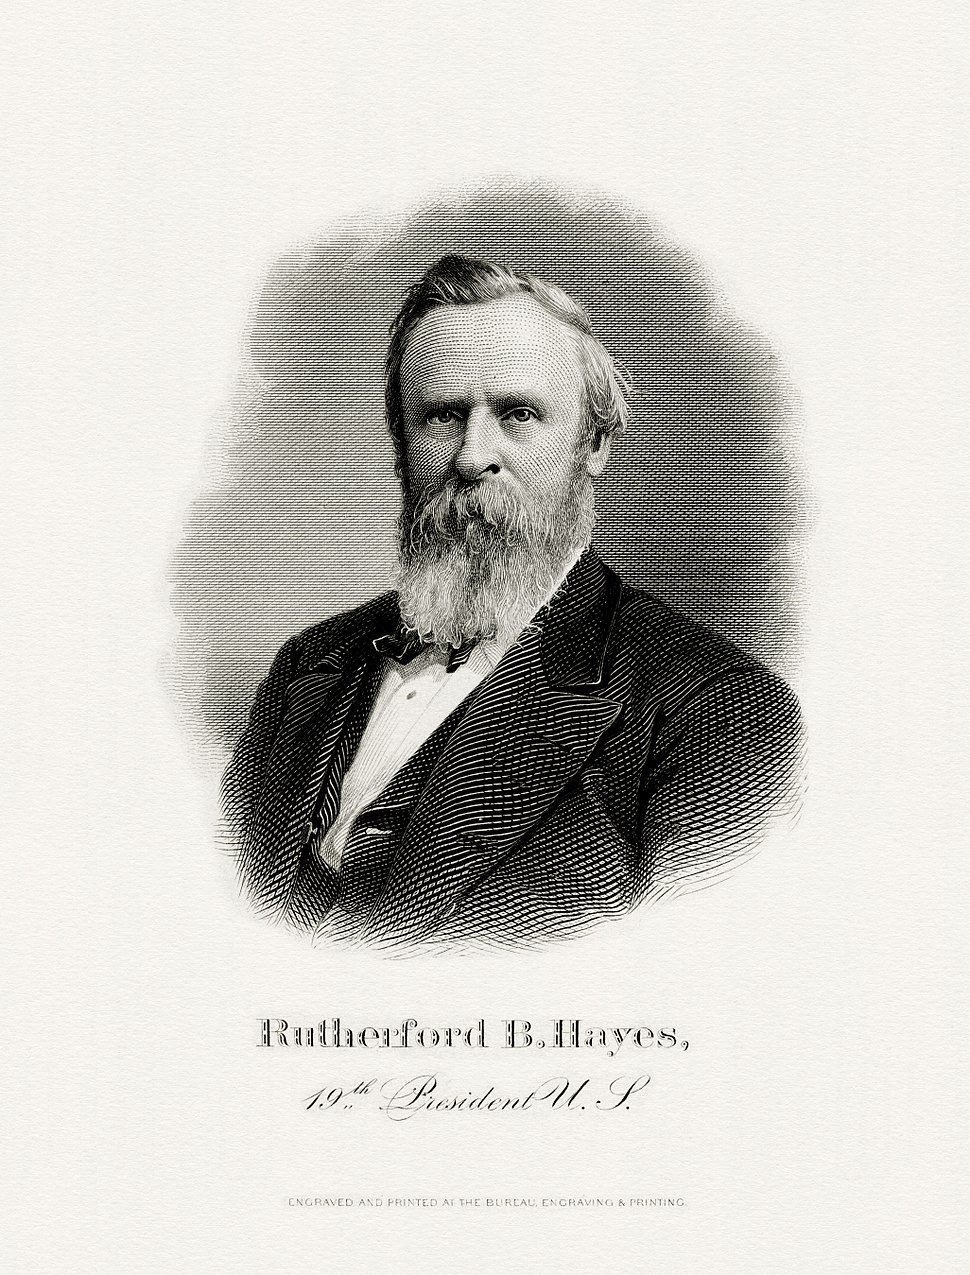 HAYES, Rutherford B-President (BEP engraved portrait)